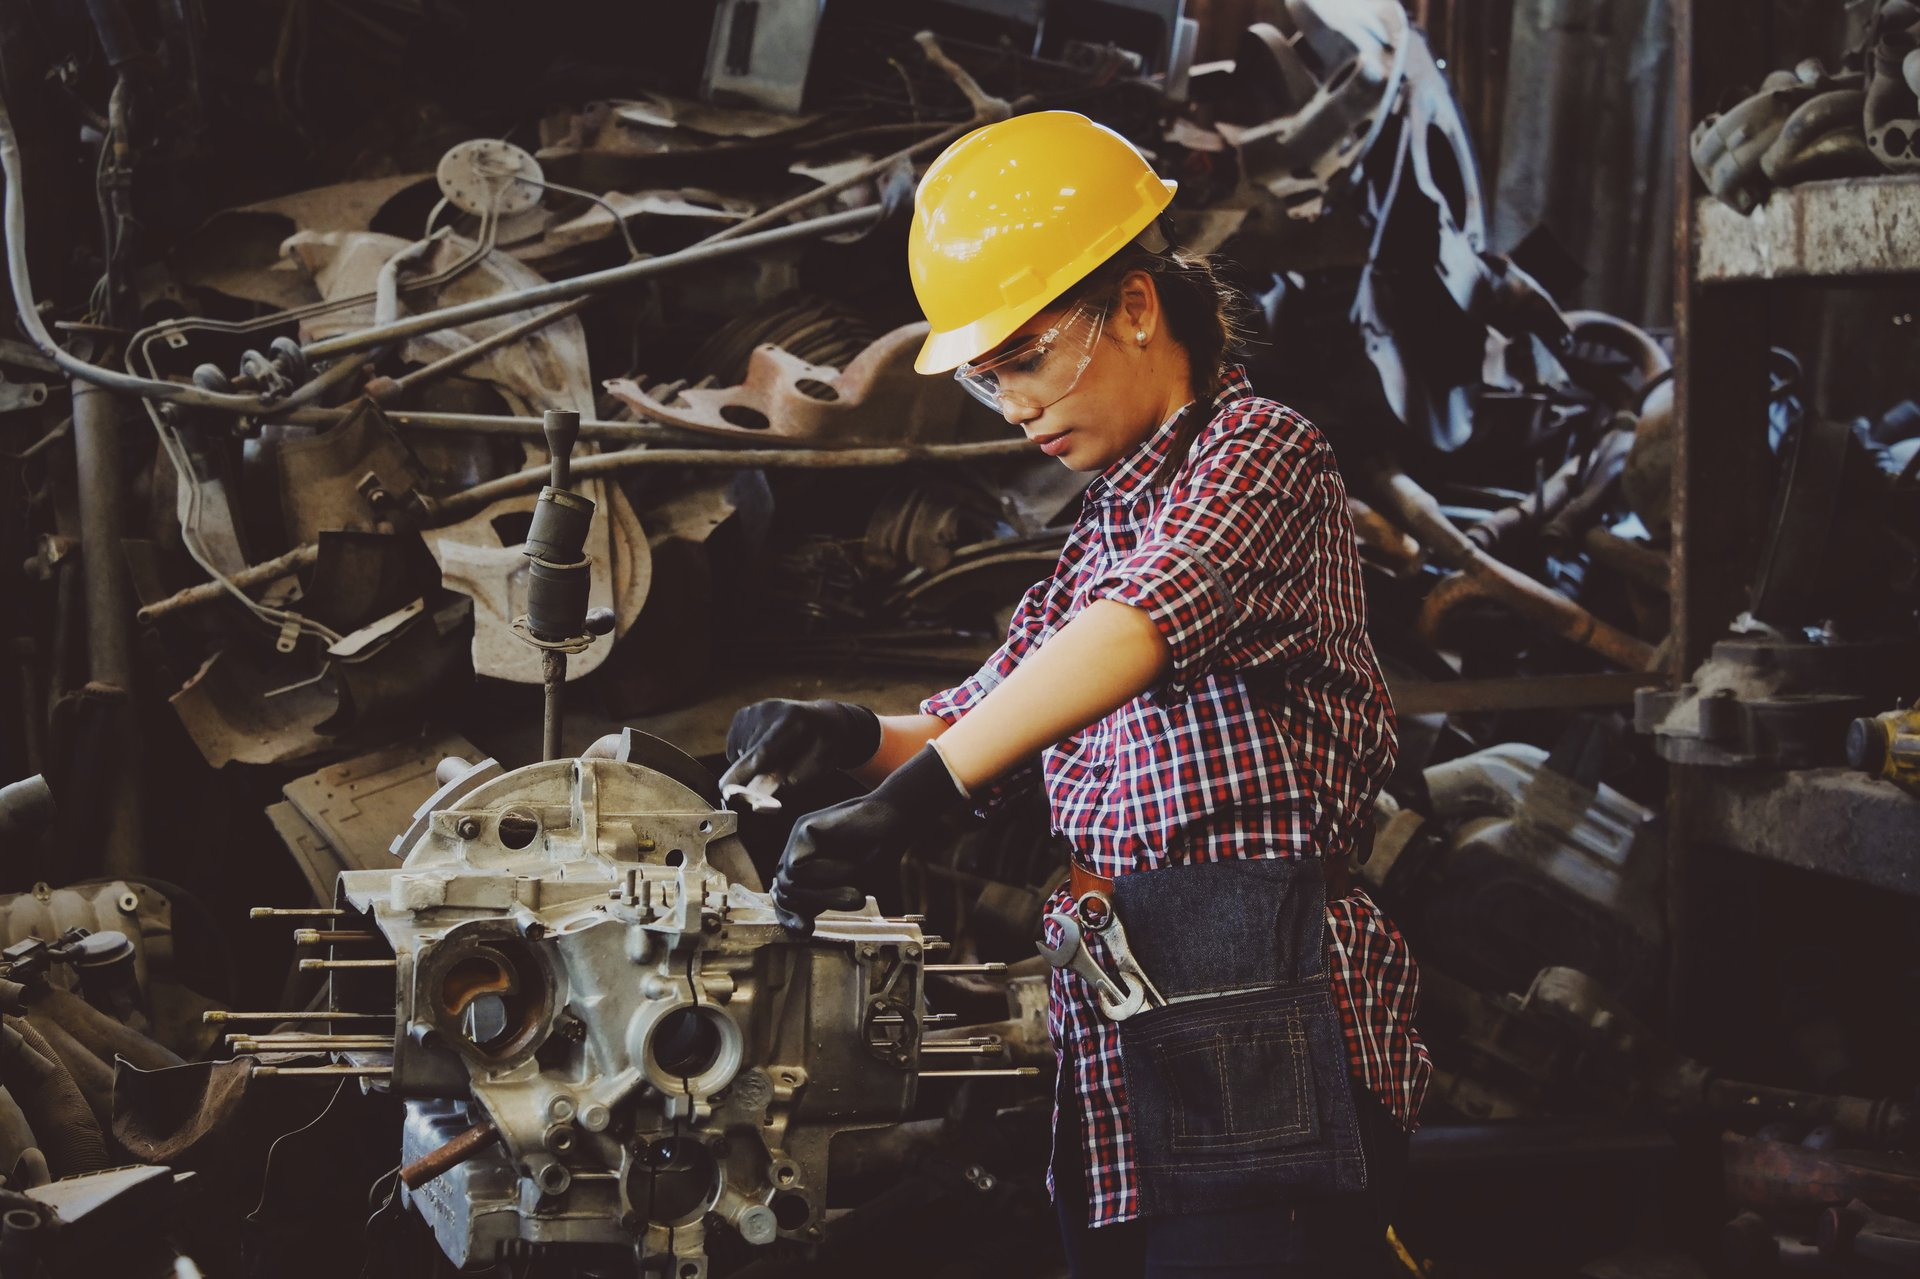 A woman wearing safety equipment works on a piece of machinery in a factory setting.